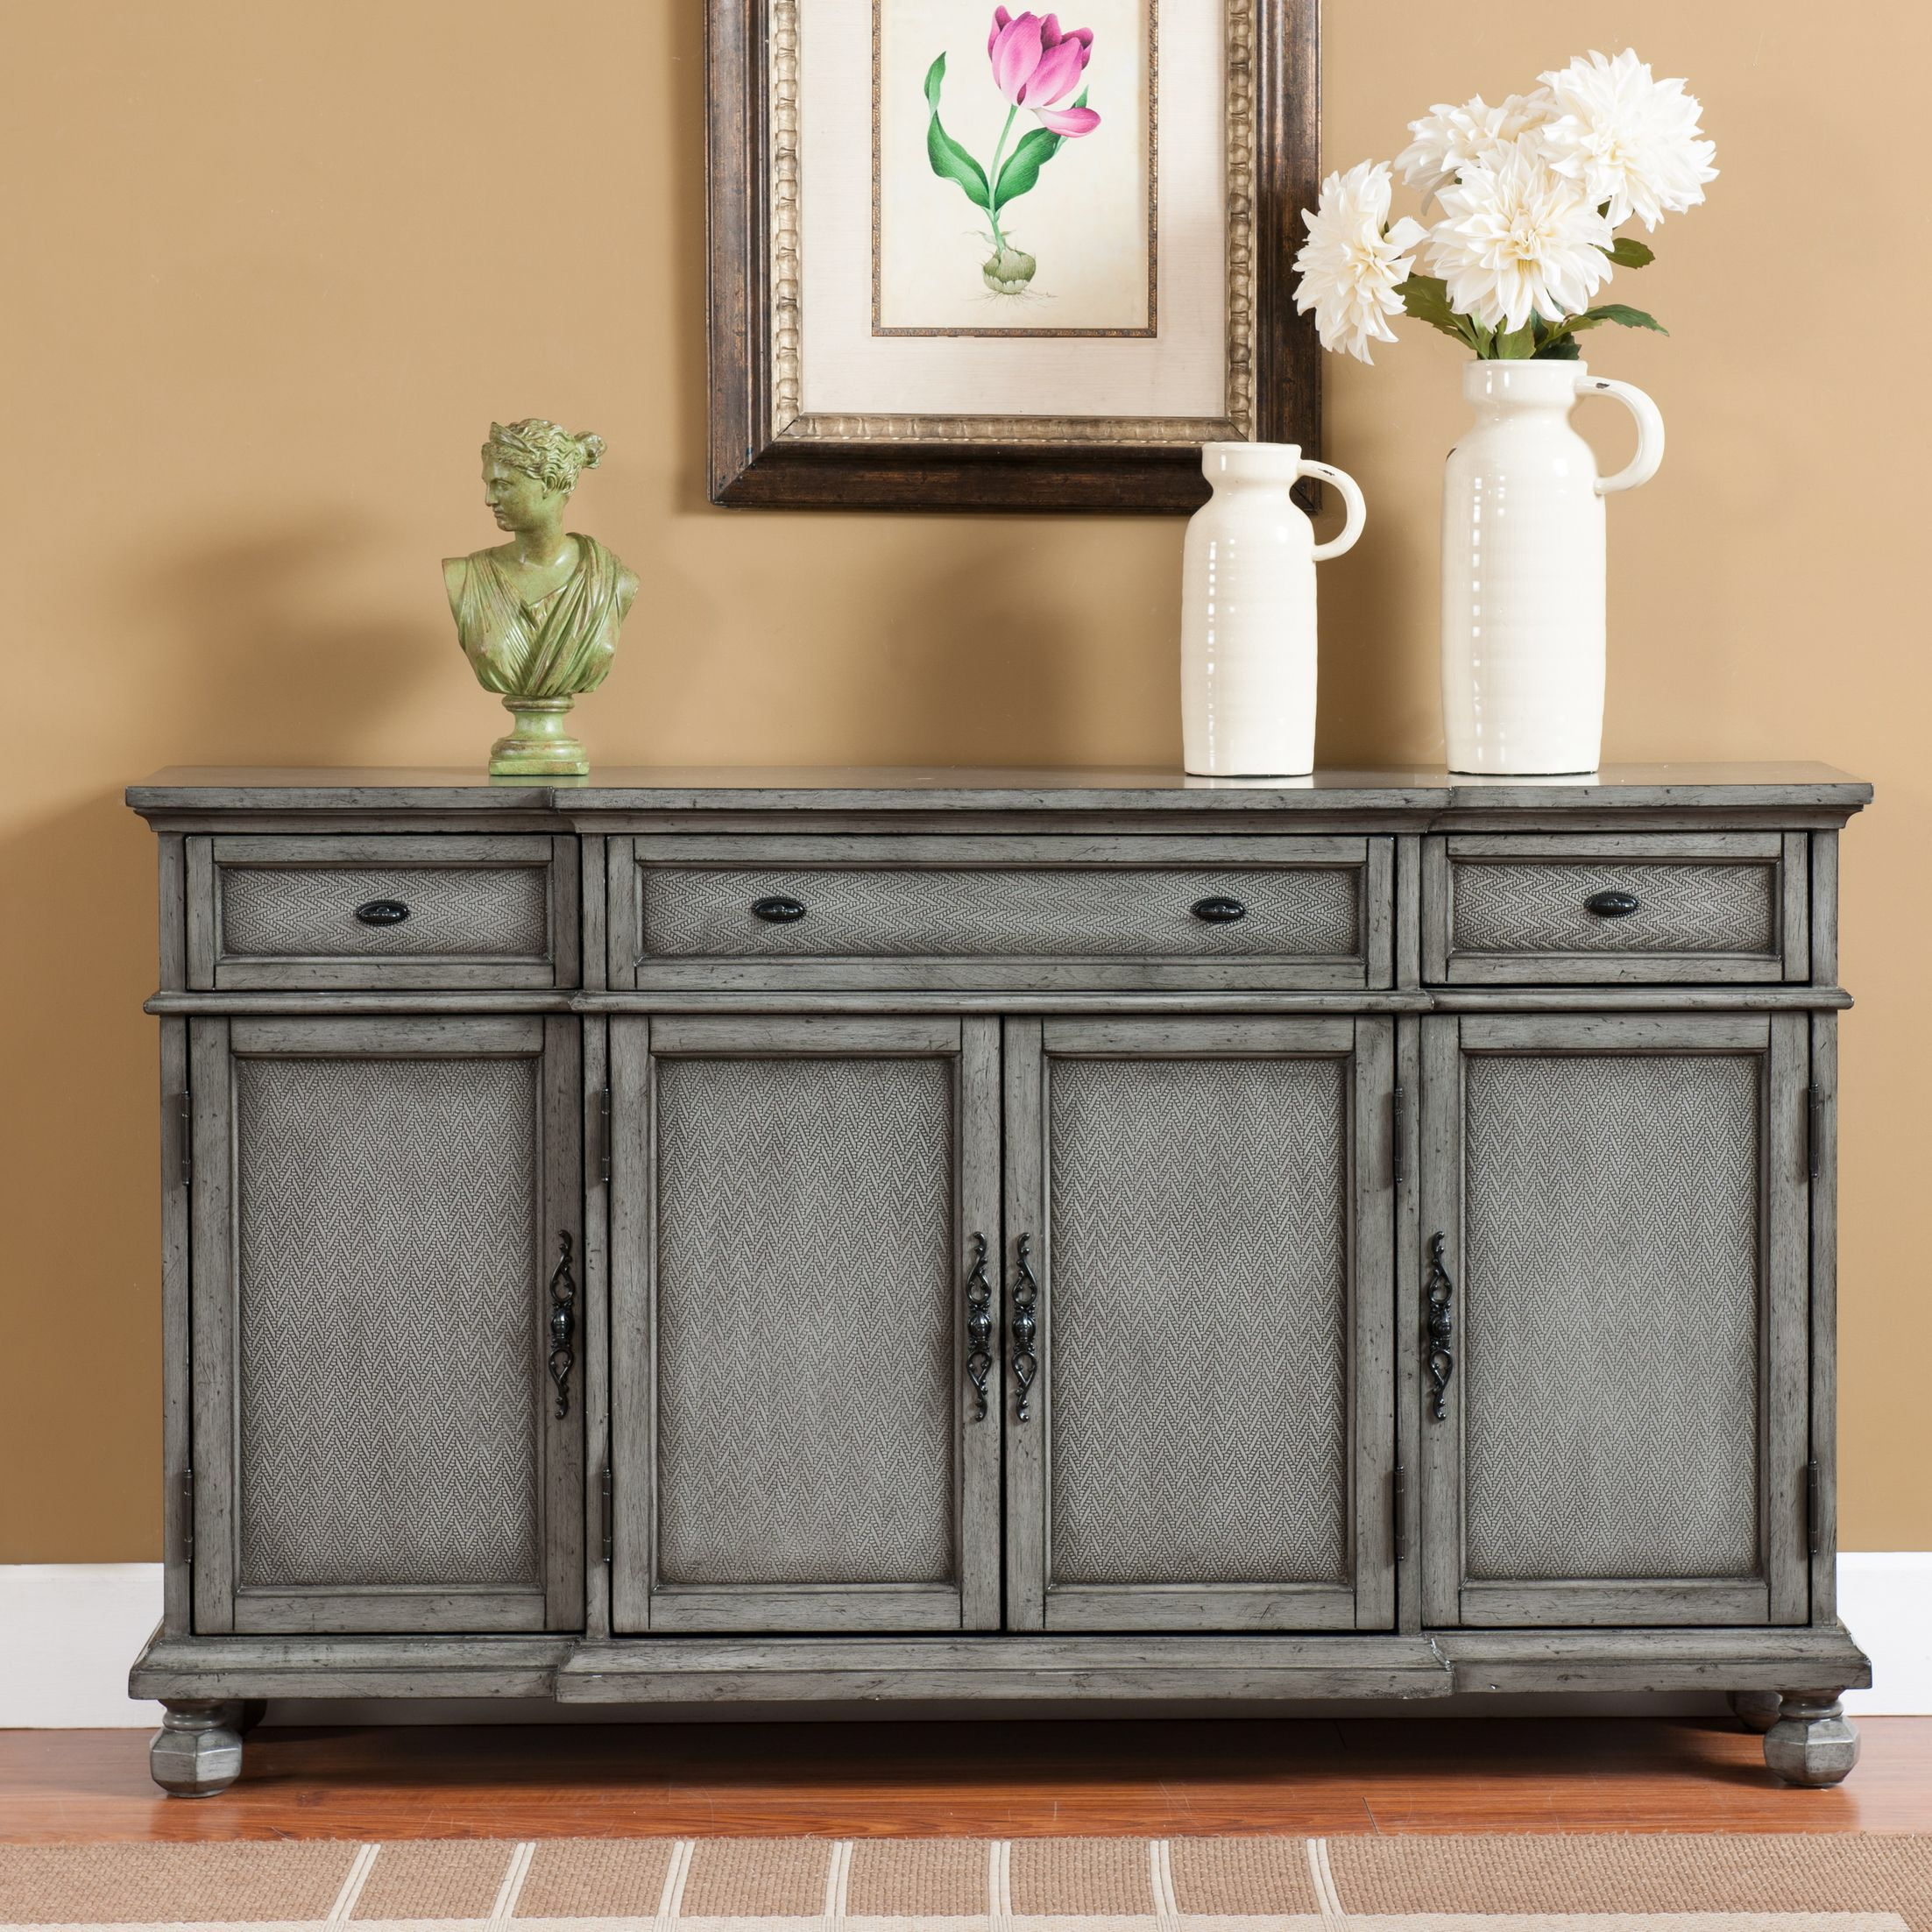 Giulia 3 Drawer Credenza | Tables & Chairs | Credenza In Current Giulia 3 Drawer Credenzas (View 3 of 20)